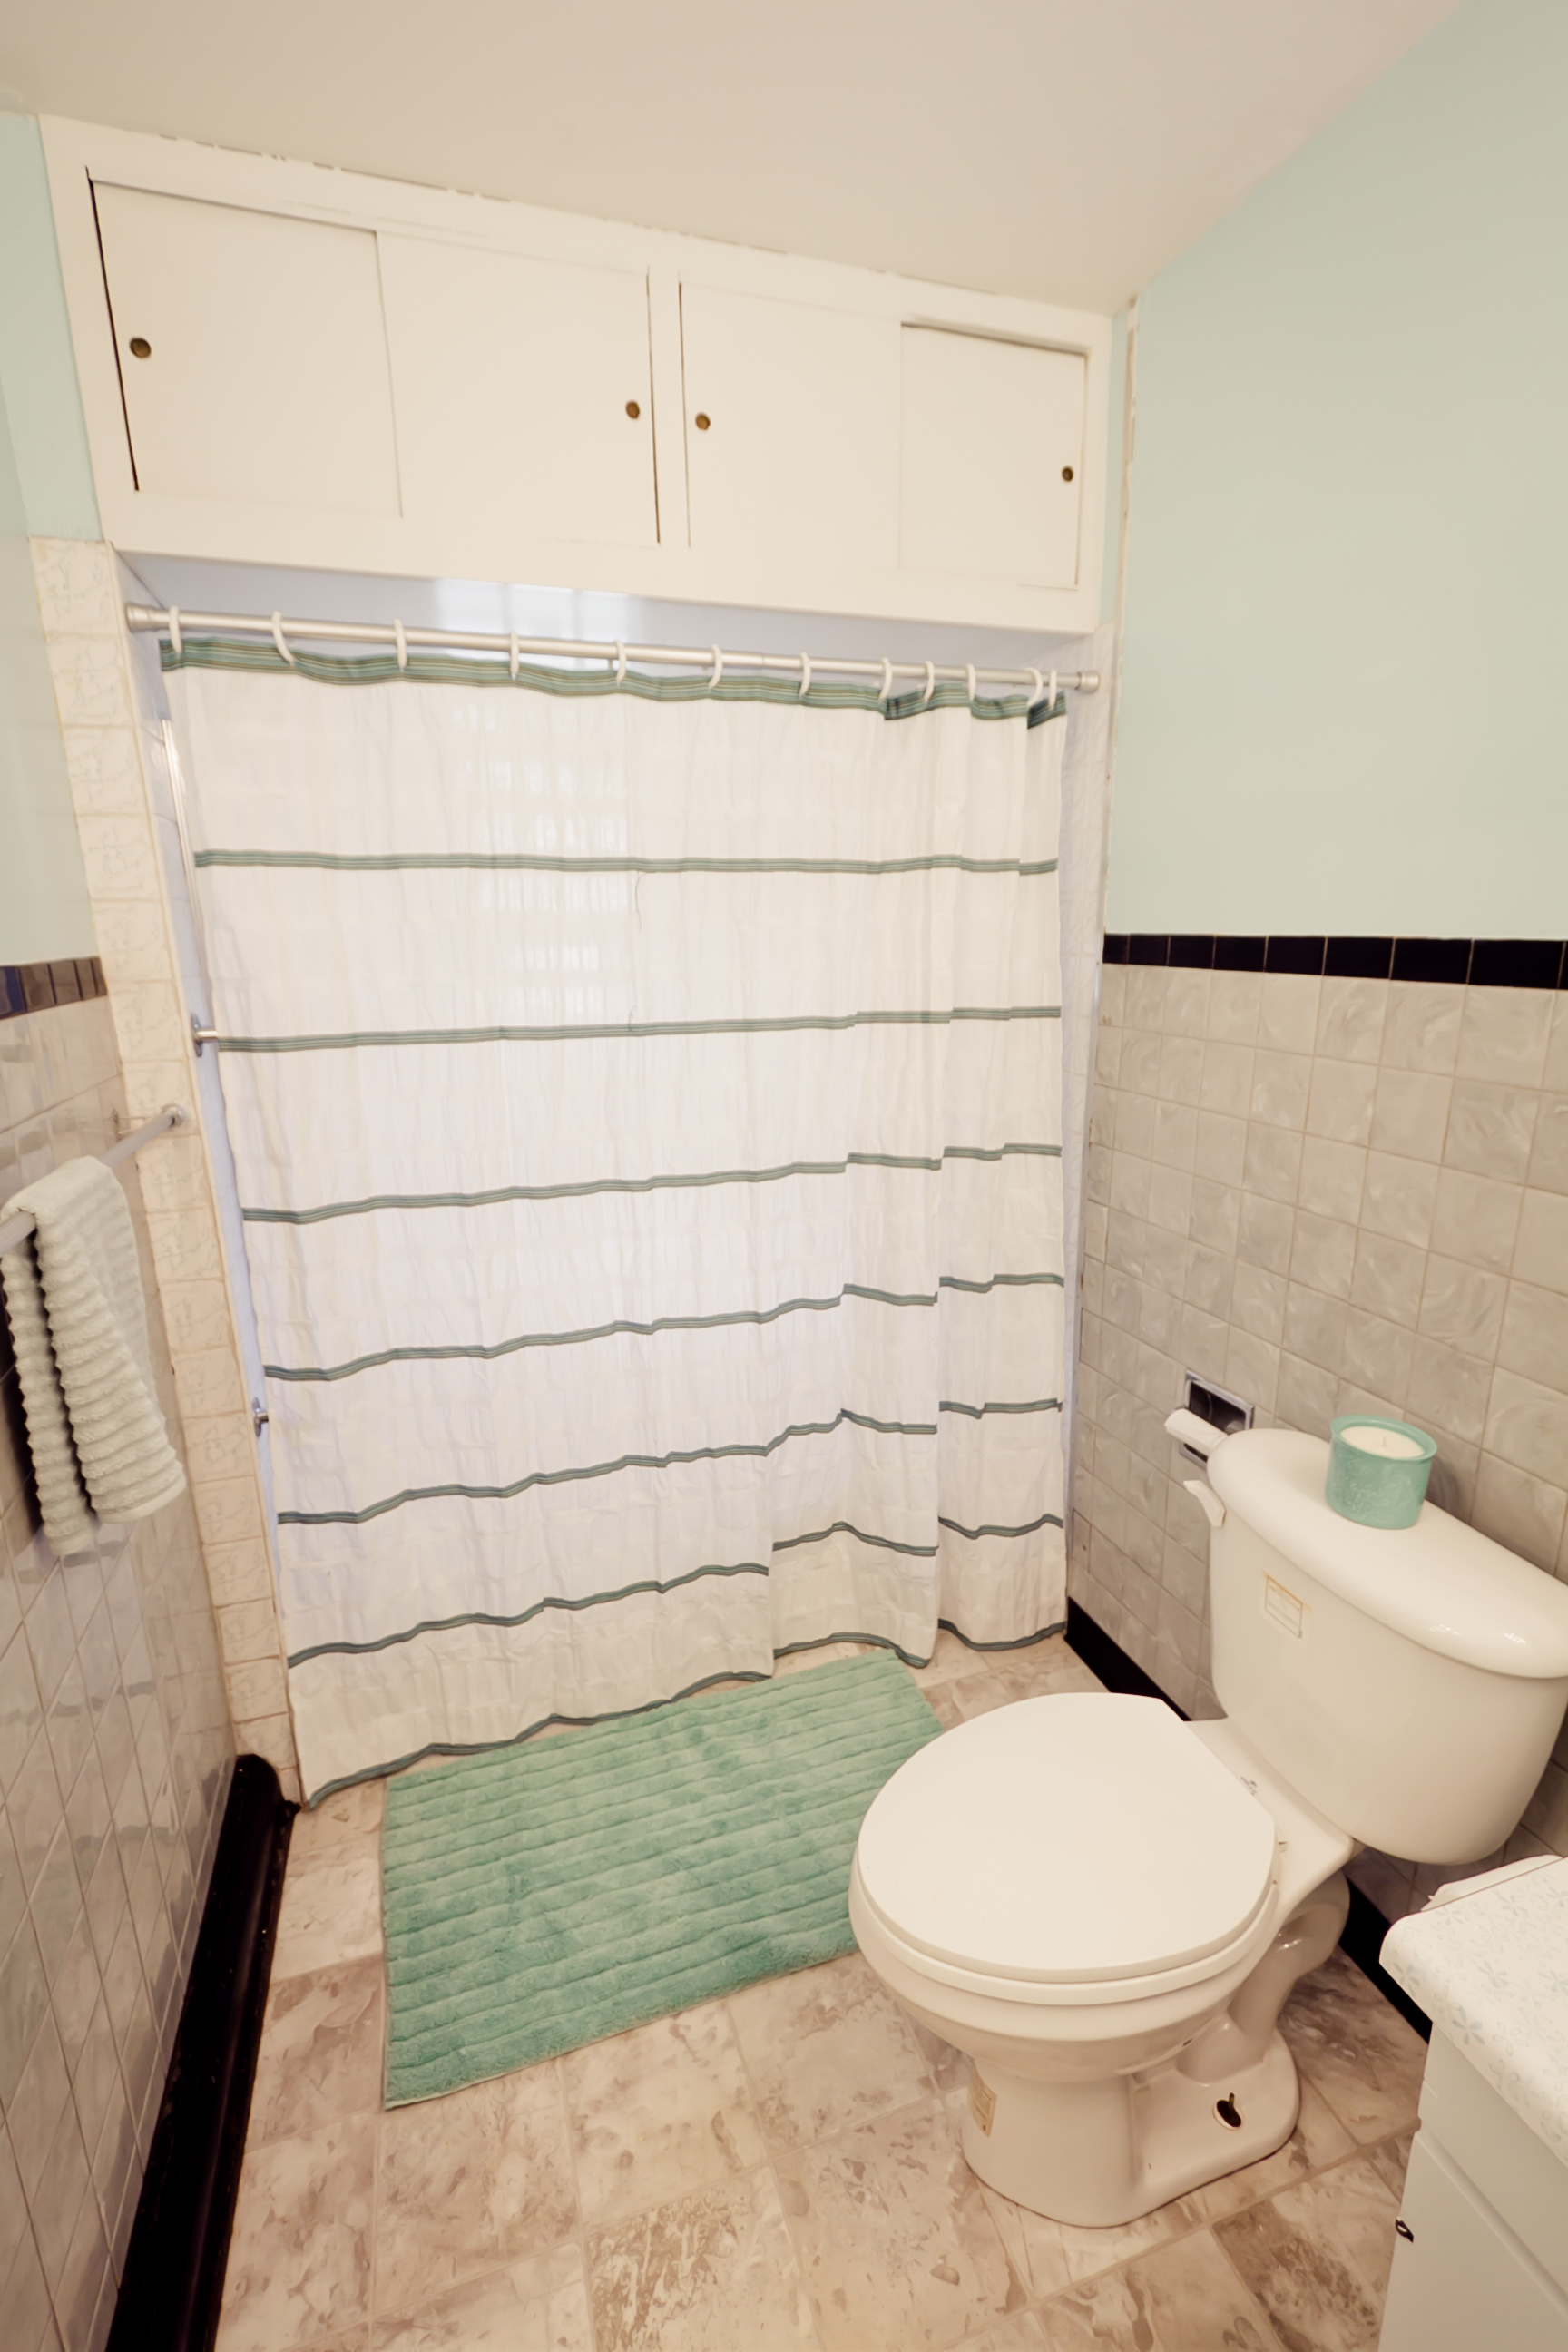 Bathroom, after being staged for sale